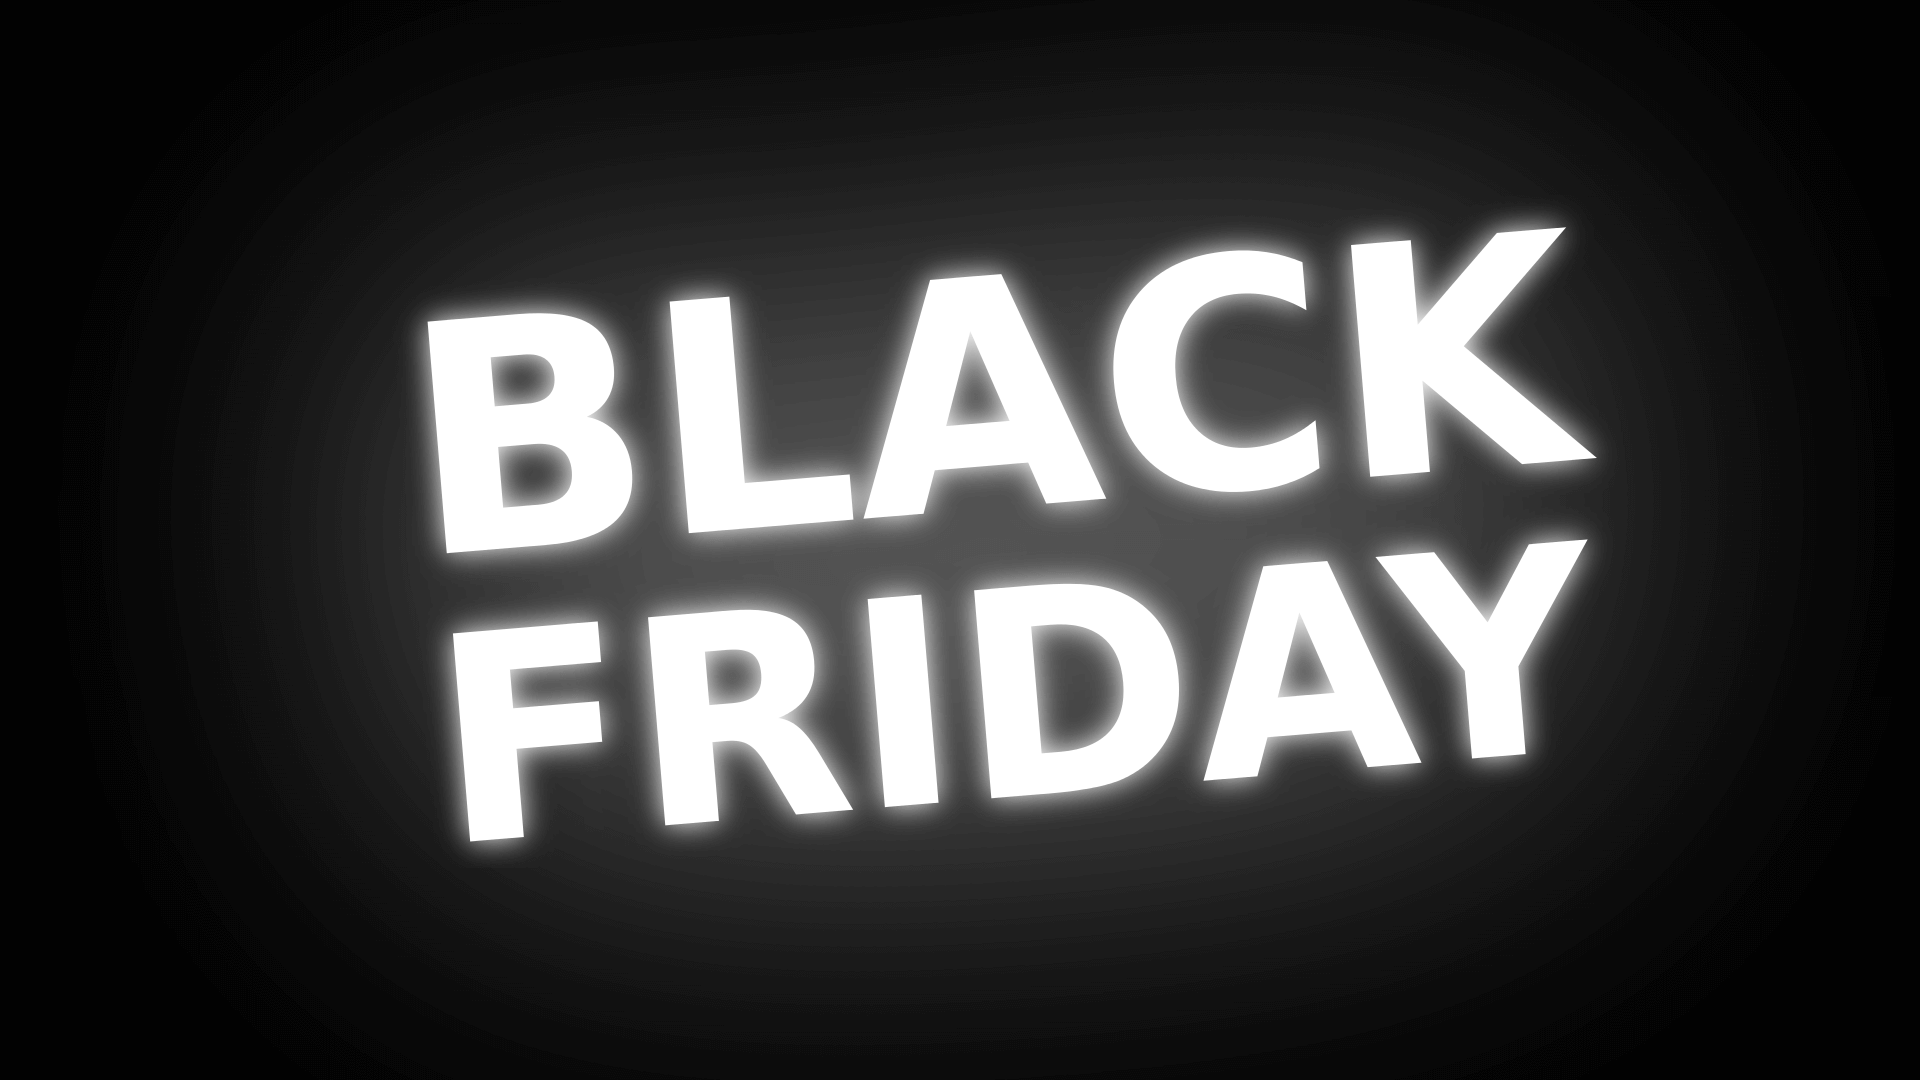 Join the MyBizTips Black Friday Giveaway!